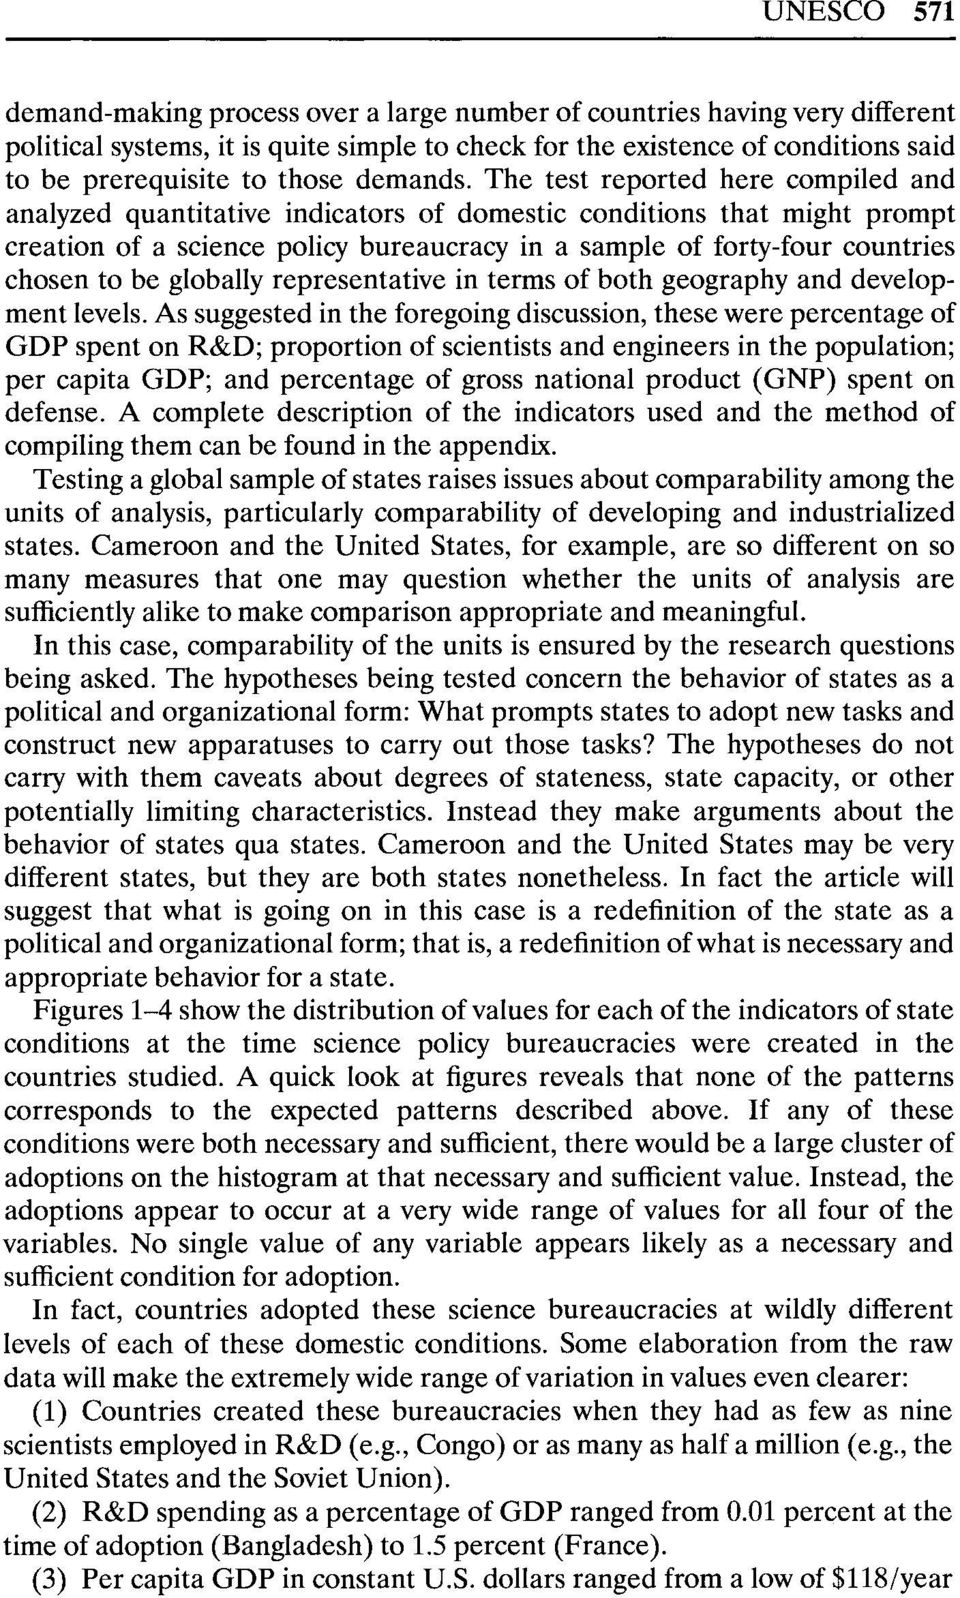 The test reported here compiled and analyzed quantitative indicators of domestic conditions that might prompt creation of a science policy bureaucracy in a sample of forty-four countries chosen to be